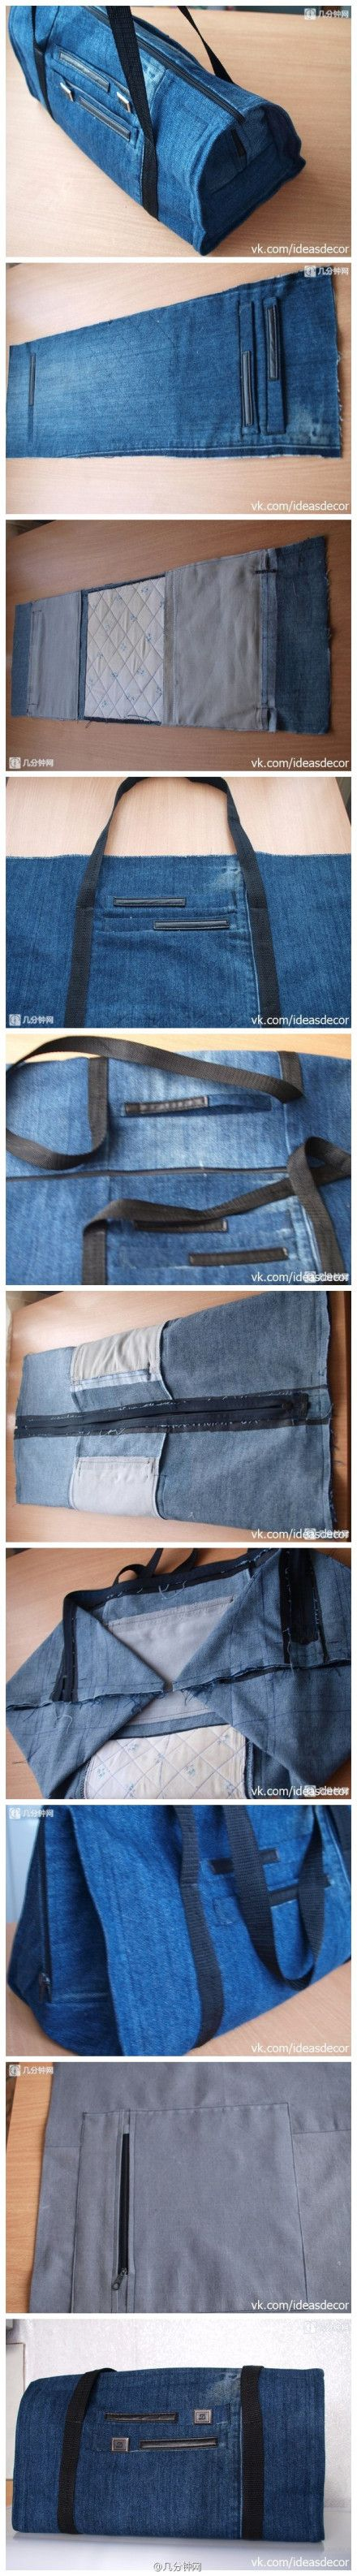 jeans bag                                                       …                                                                                                                                                                                 More